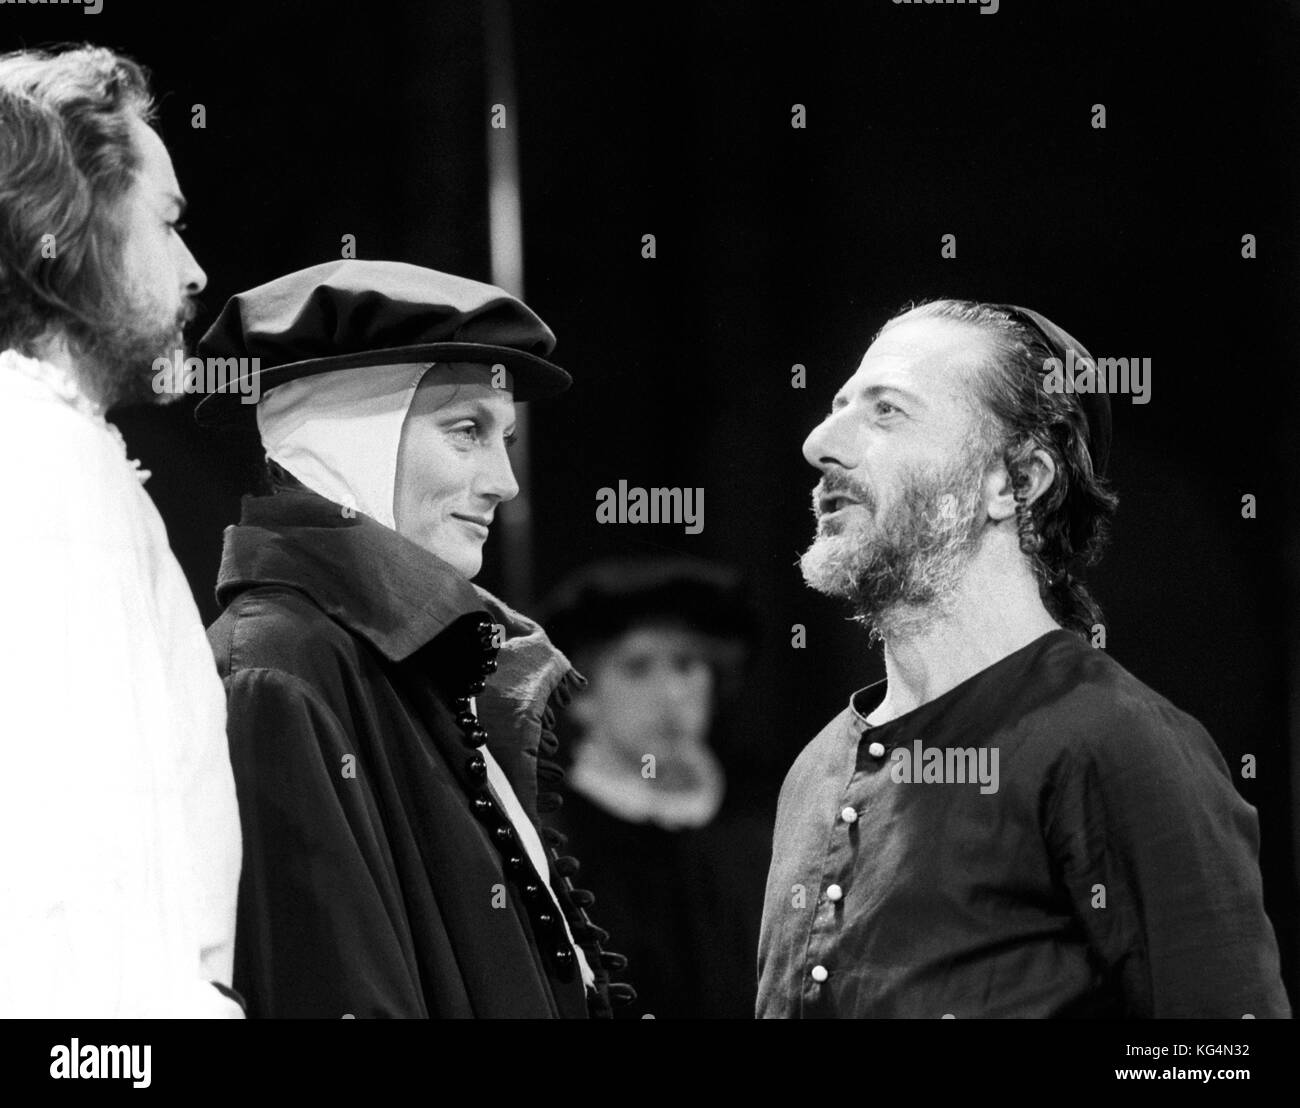 an evaluation of the role of shylock in the play the merchant of venice by william shakespeare Shylock in william shakespeare's the merchant of venice the above statement suggests two assumptions firstly, that shylock is an unattractive character in the play.